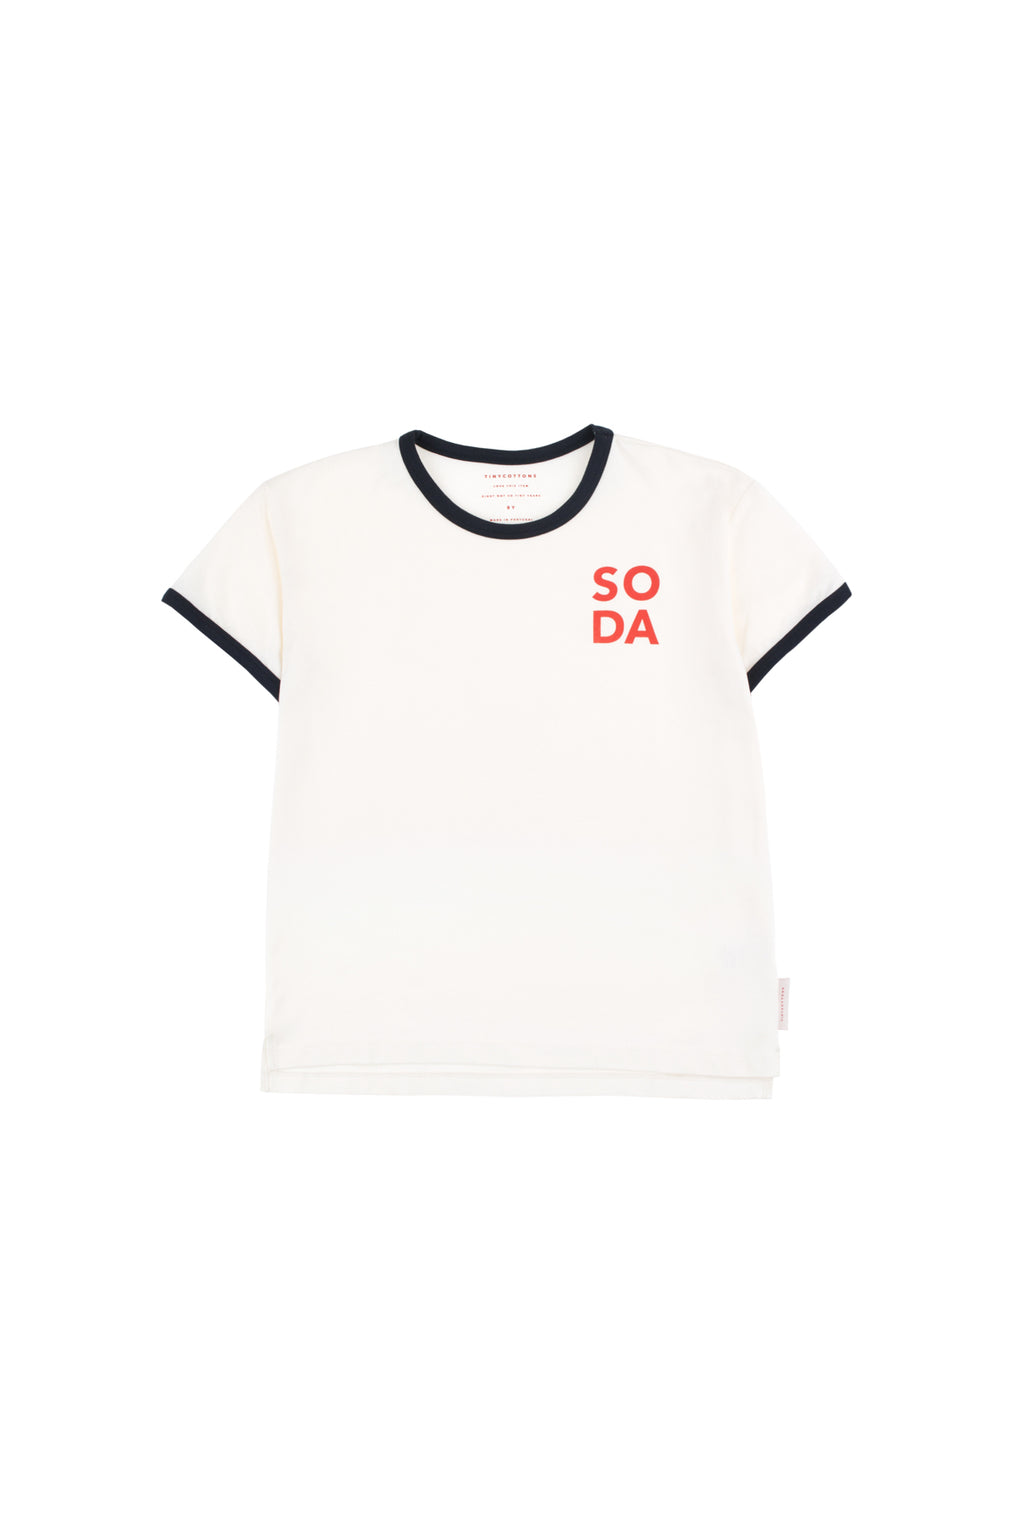 Tiny Cottons Soda Tee